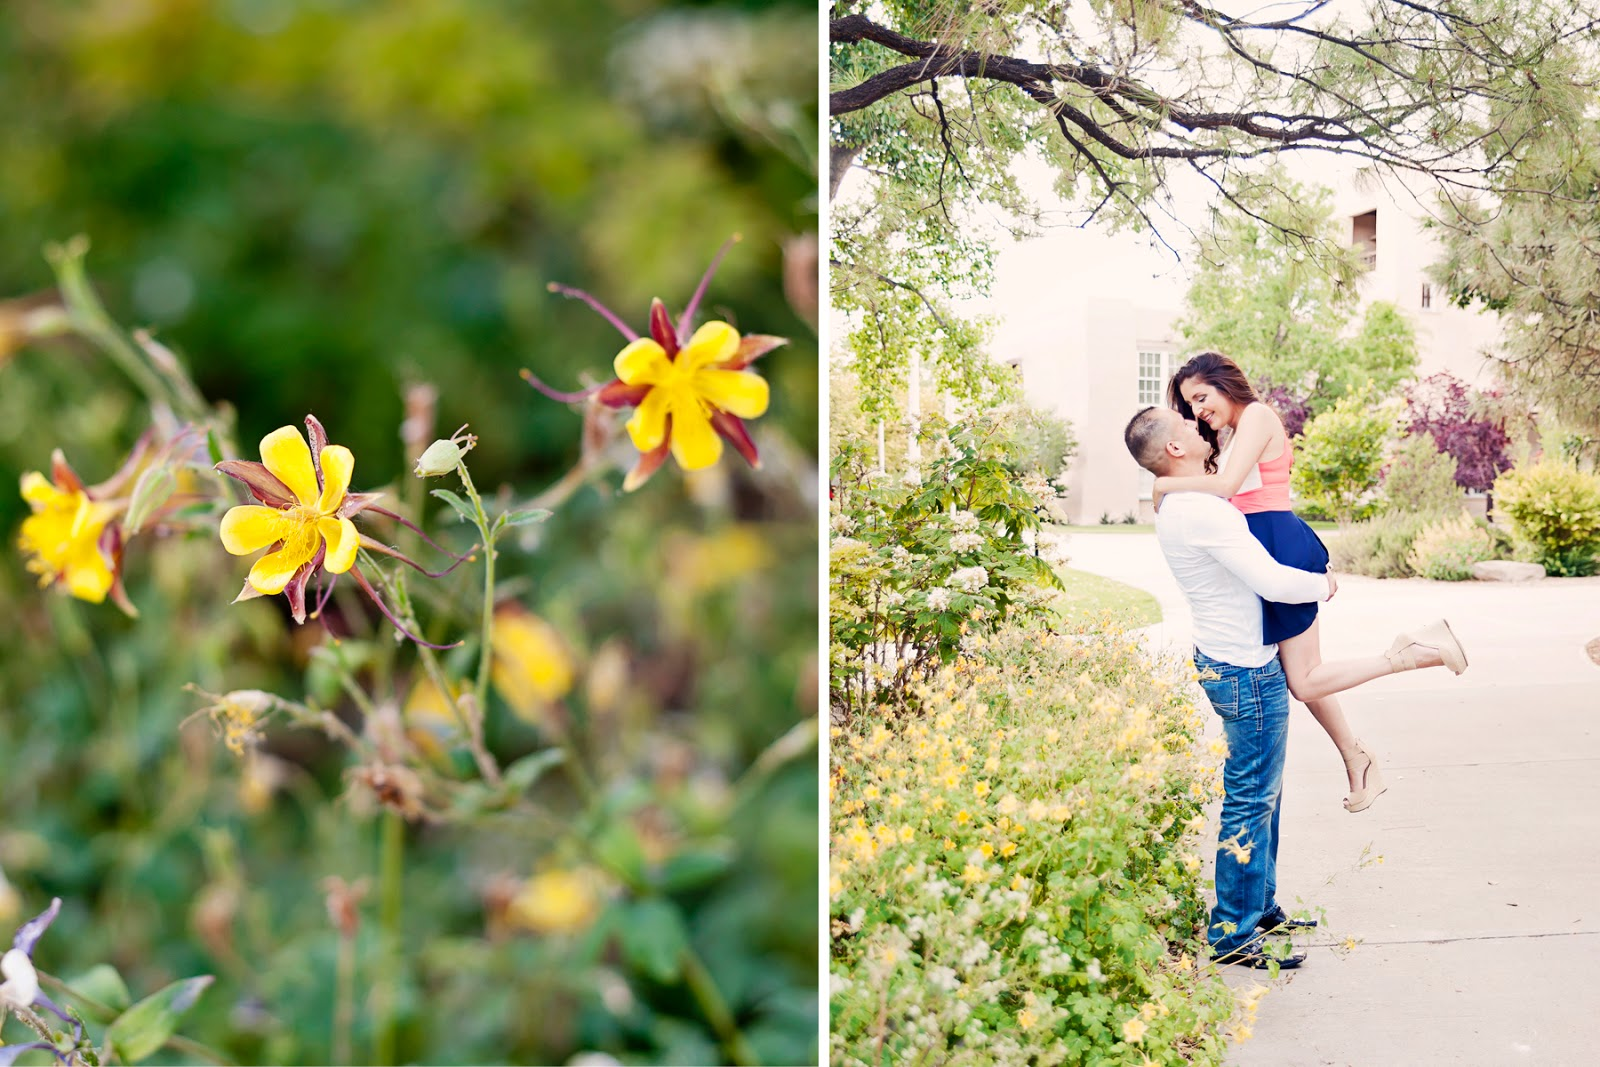 university of new mexico, Albuquerque engagement session, Albuquerque engagement photography, Albuquerque engagement ideas, UNM photos, UNM engagement pictures, UNM duck pond, Albuquerque engagement photo locations, Albuquerque engagement photographer, New Mexico wedding photographers, Albuquerque wedding photographers